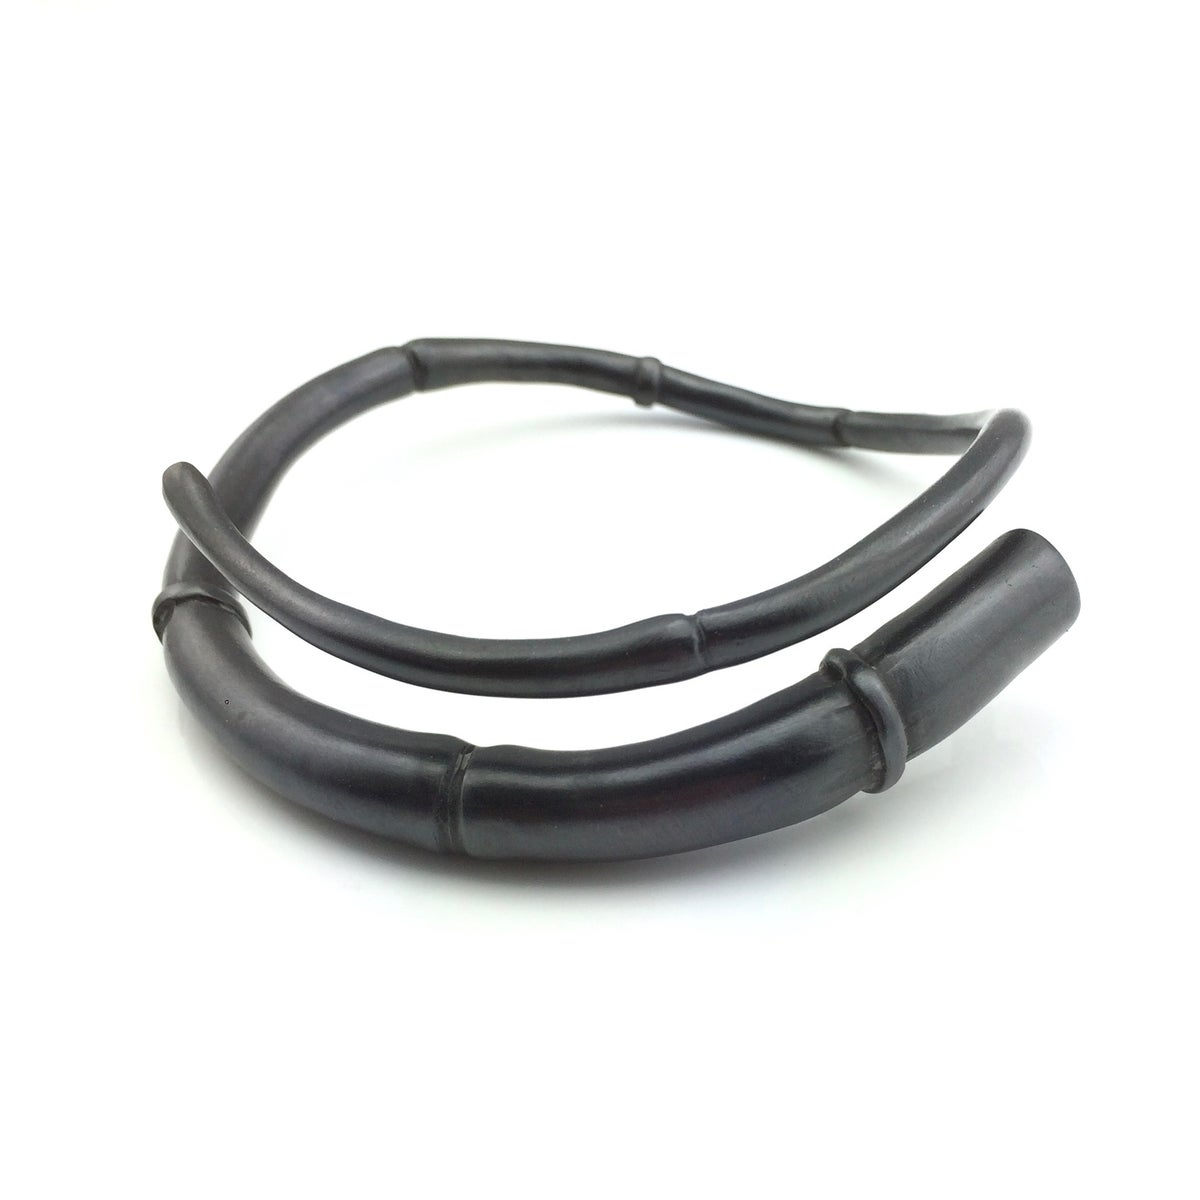 Image of Black Tendril Bangle Bracelet 05